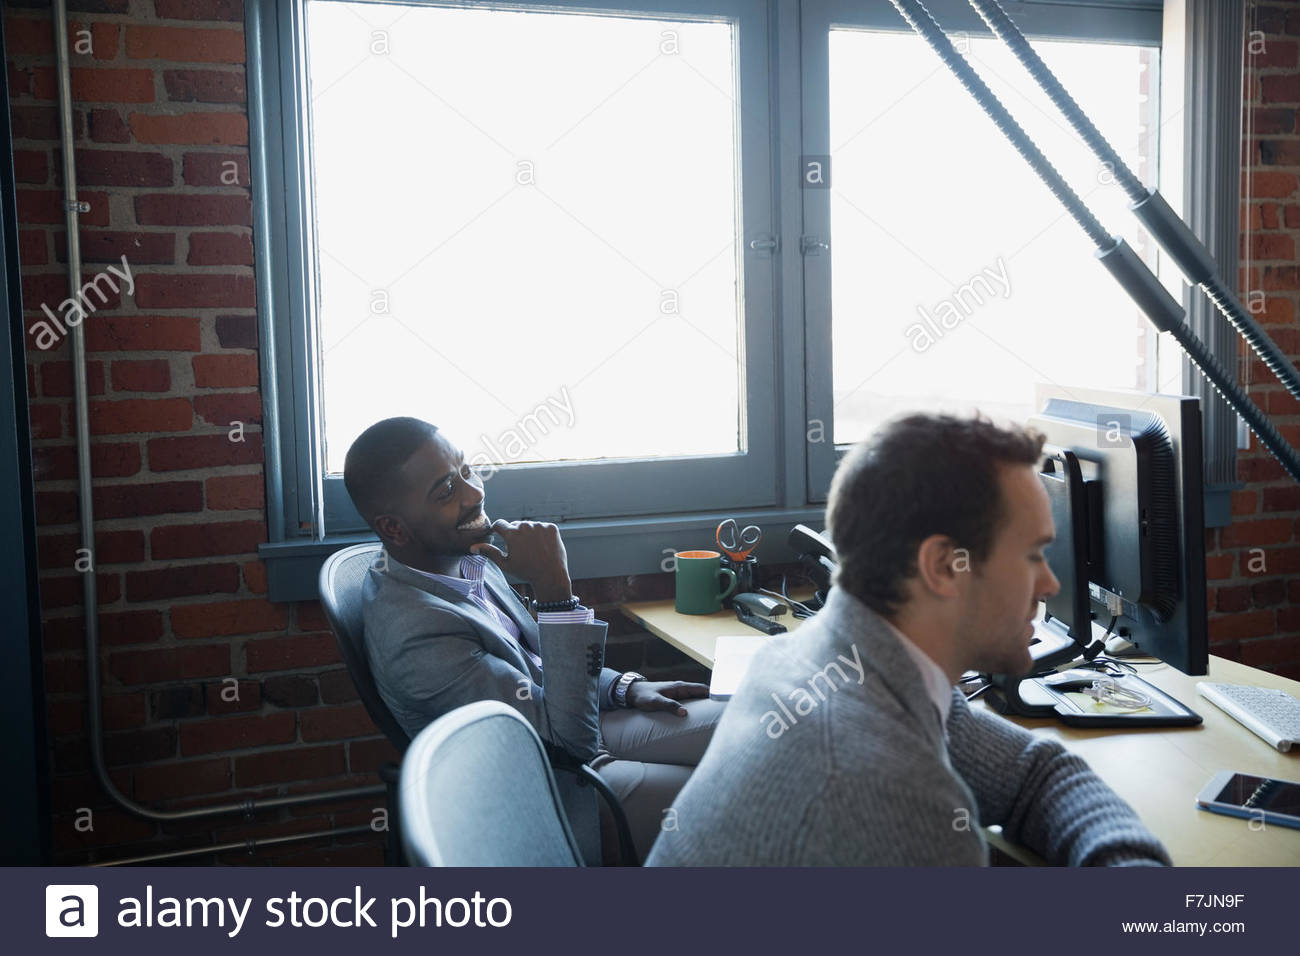 Businessmen in meeting - Stock Image